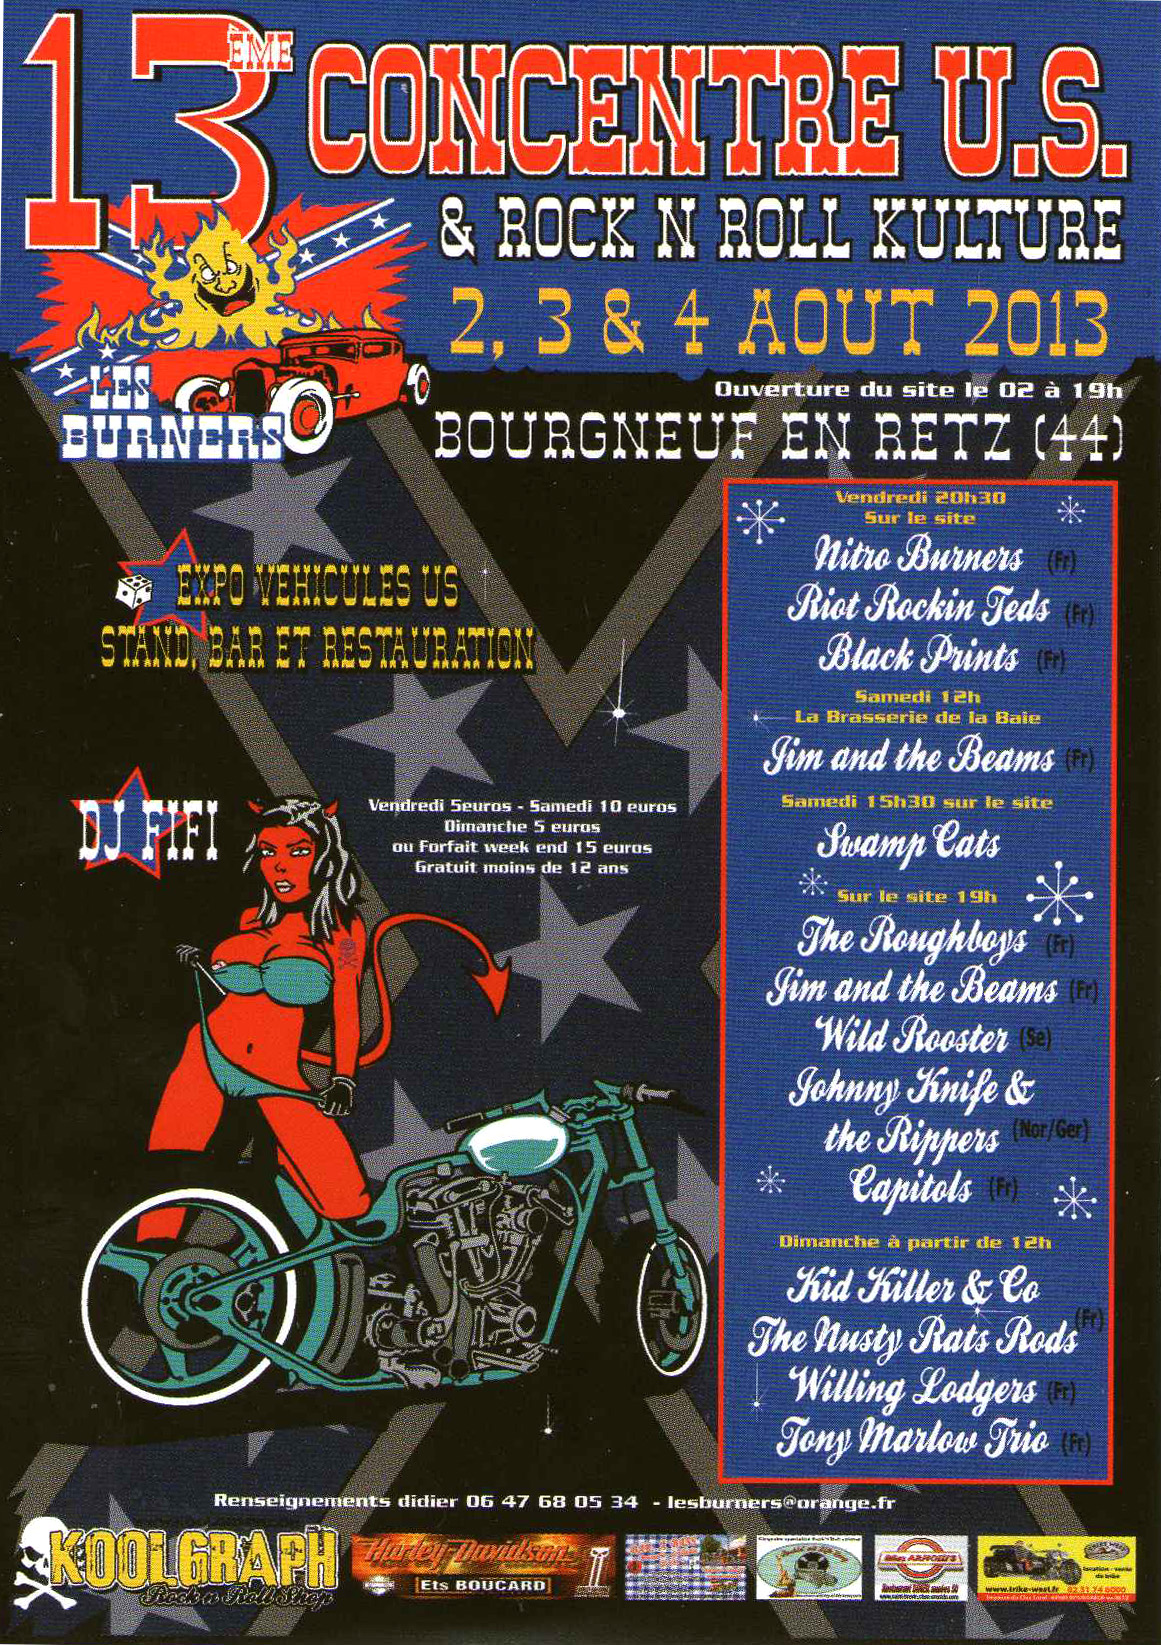 Burners - festival rockabilly à Bourgneuf en retz